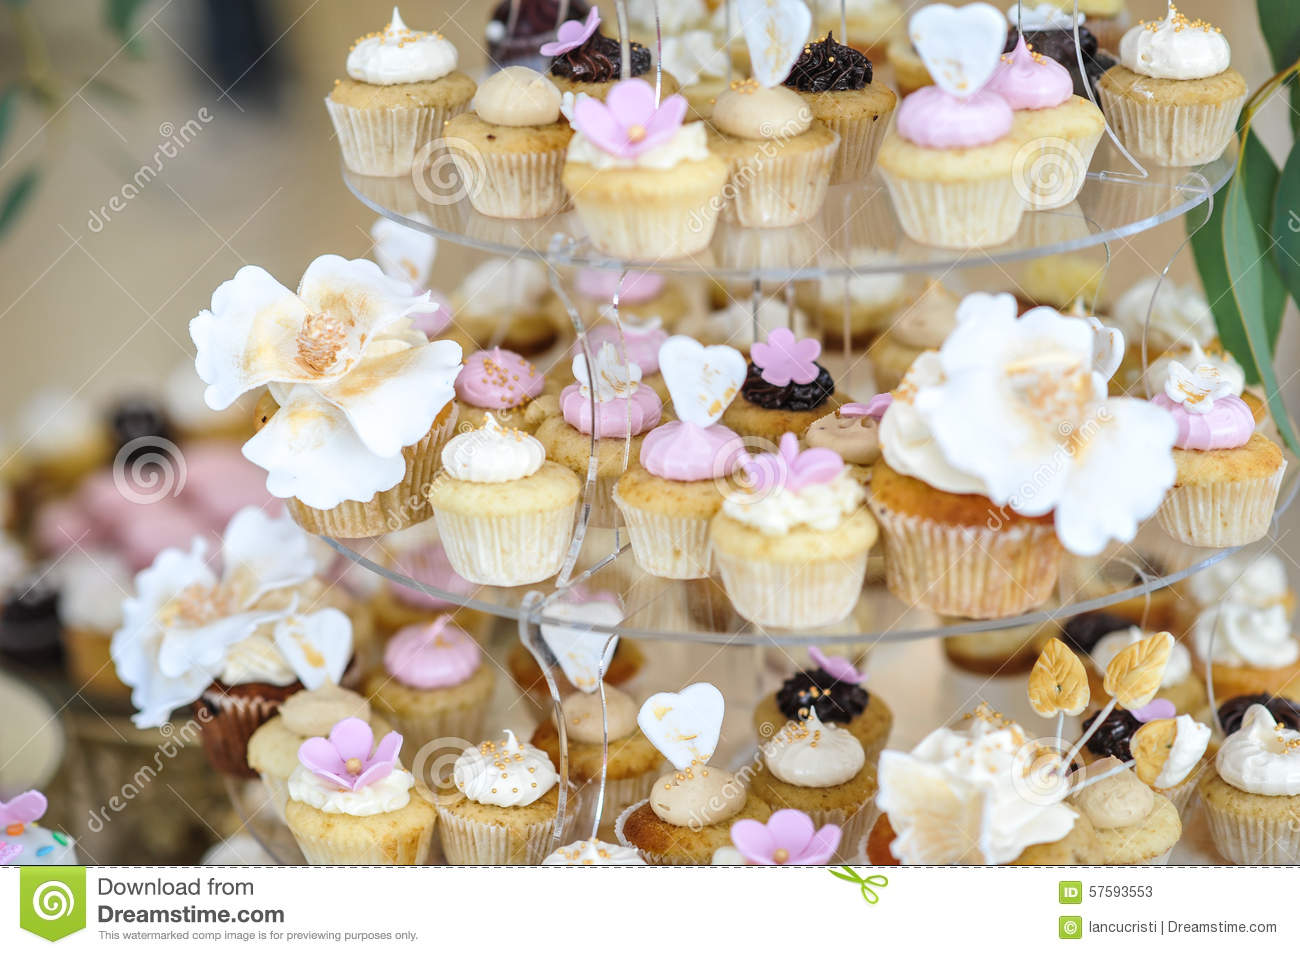 Wedding Decoration With Pastel Colored Cupcakes Meringues